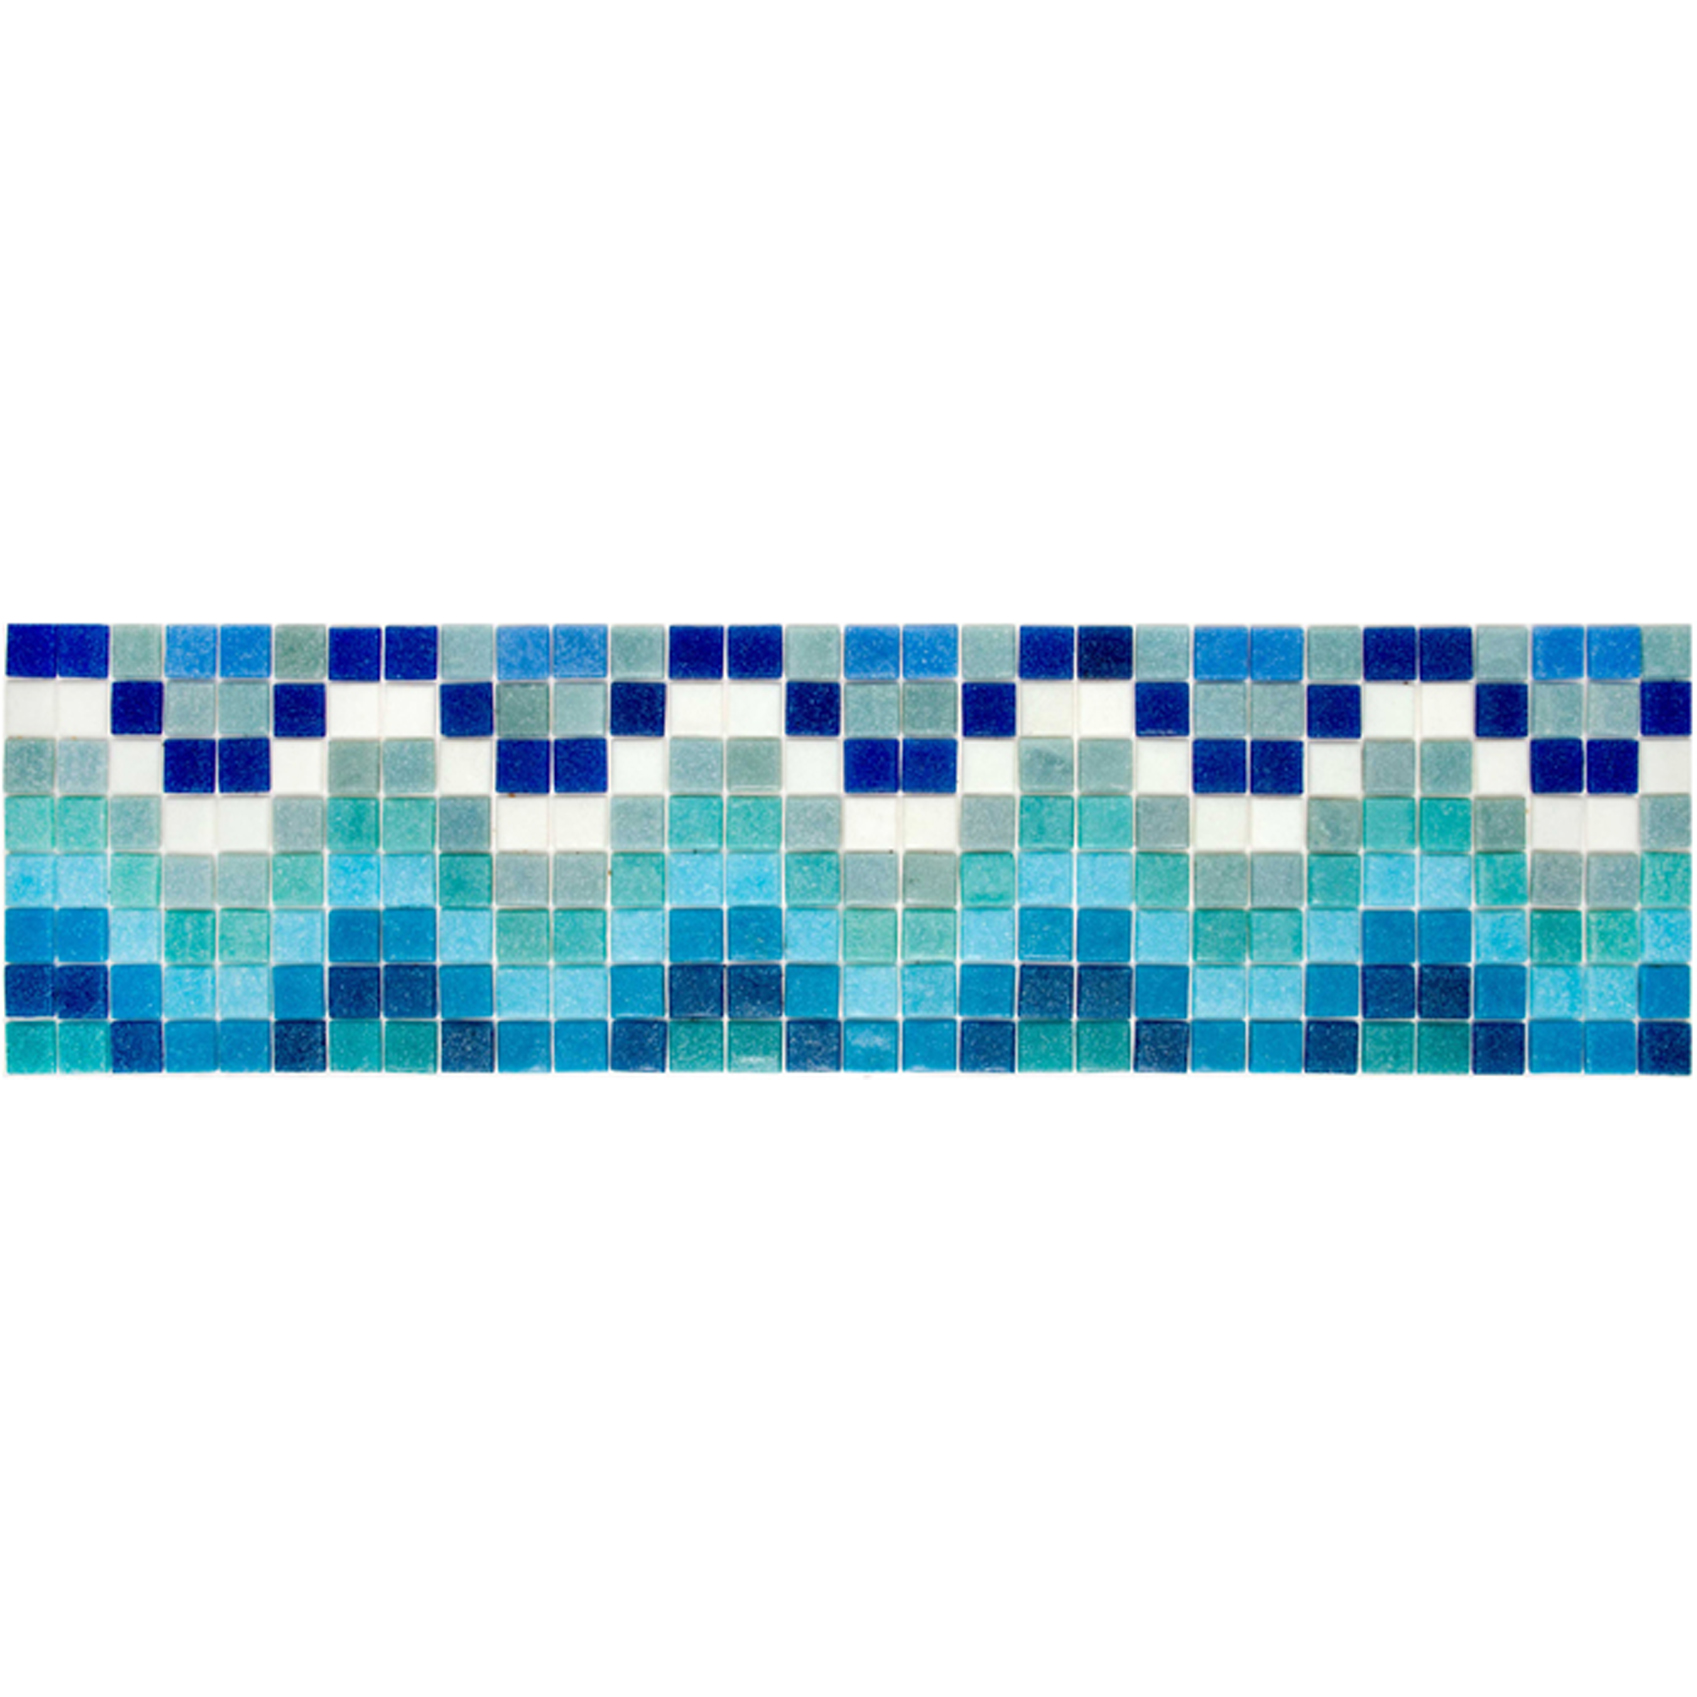 "Ripple Glass Mosaic Waterline or Border 6.25"" High, 1 Lineal Foot"